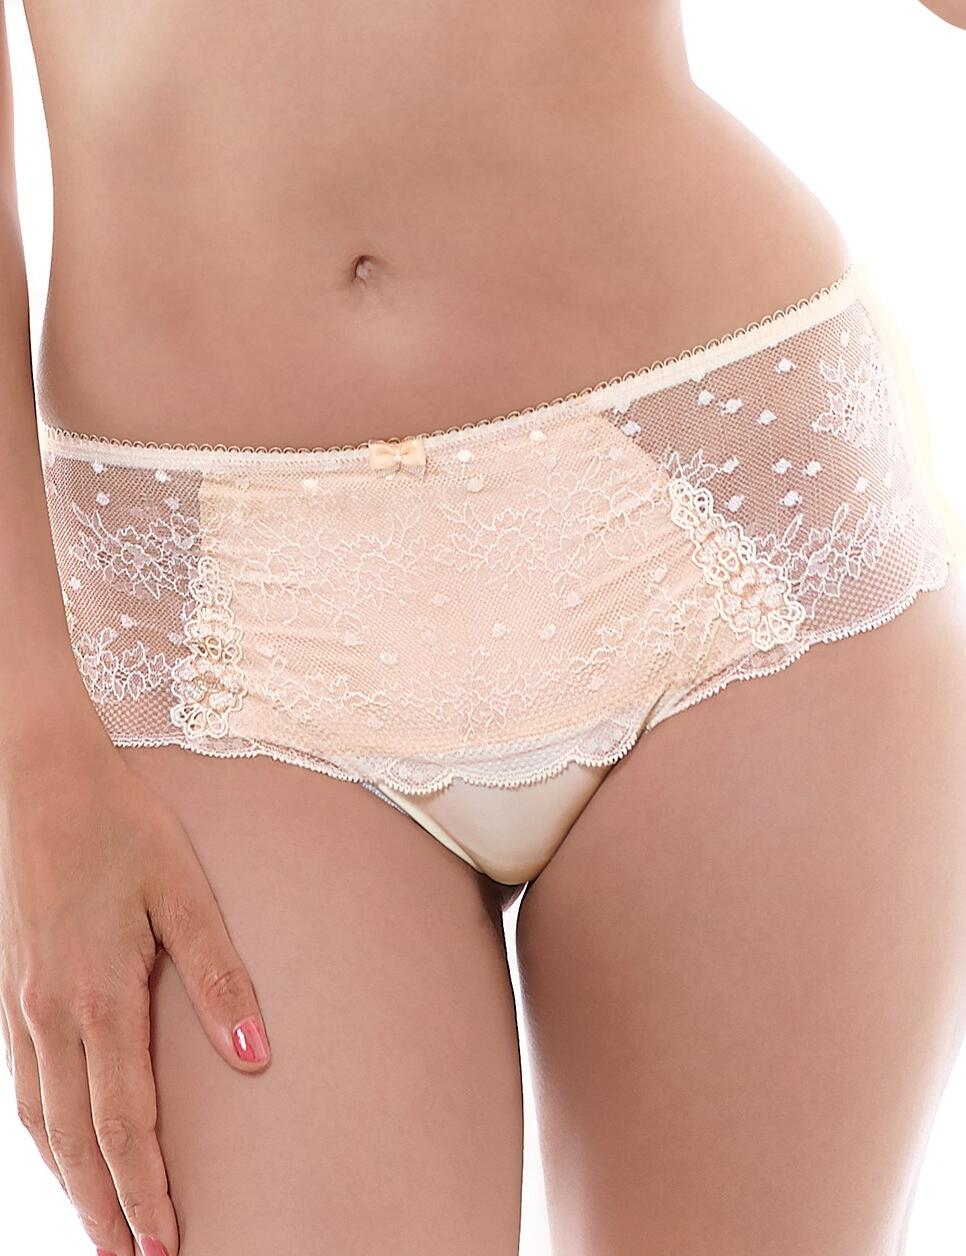 cd13f411a8 Fantasie Lingerie Ivana 9027 Deep Thong Knickers In Oyster